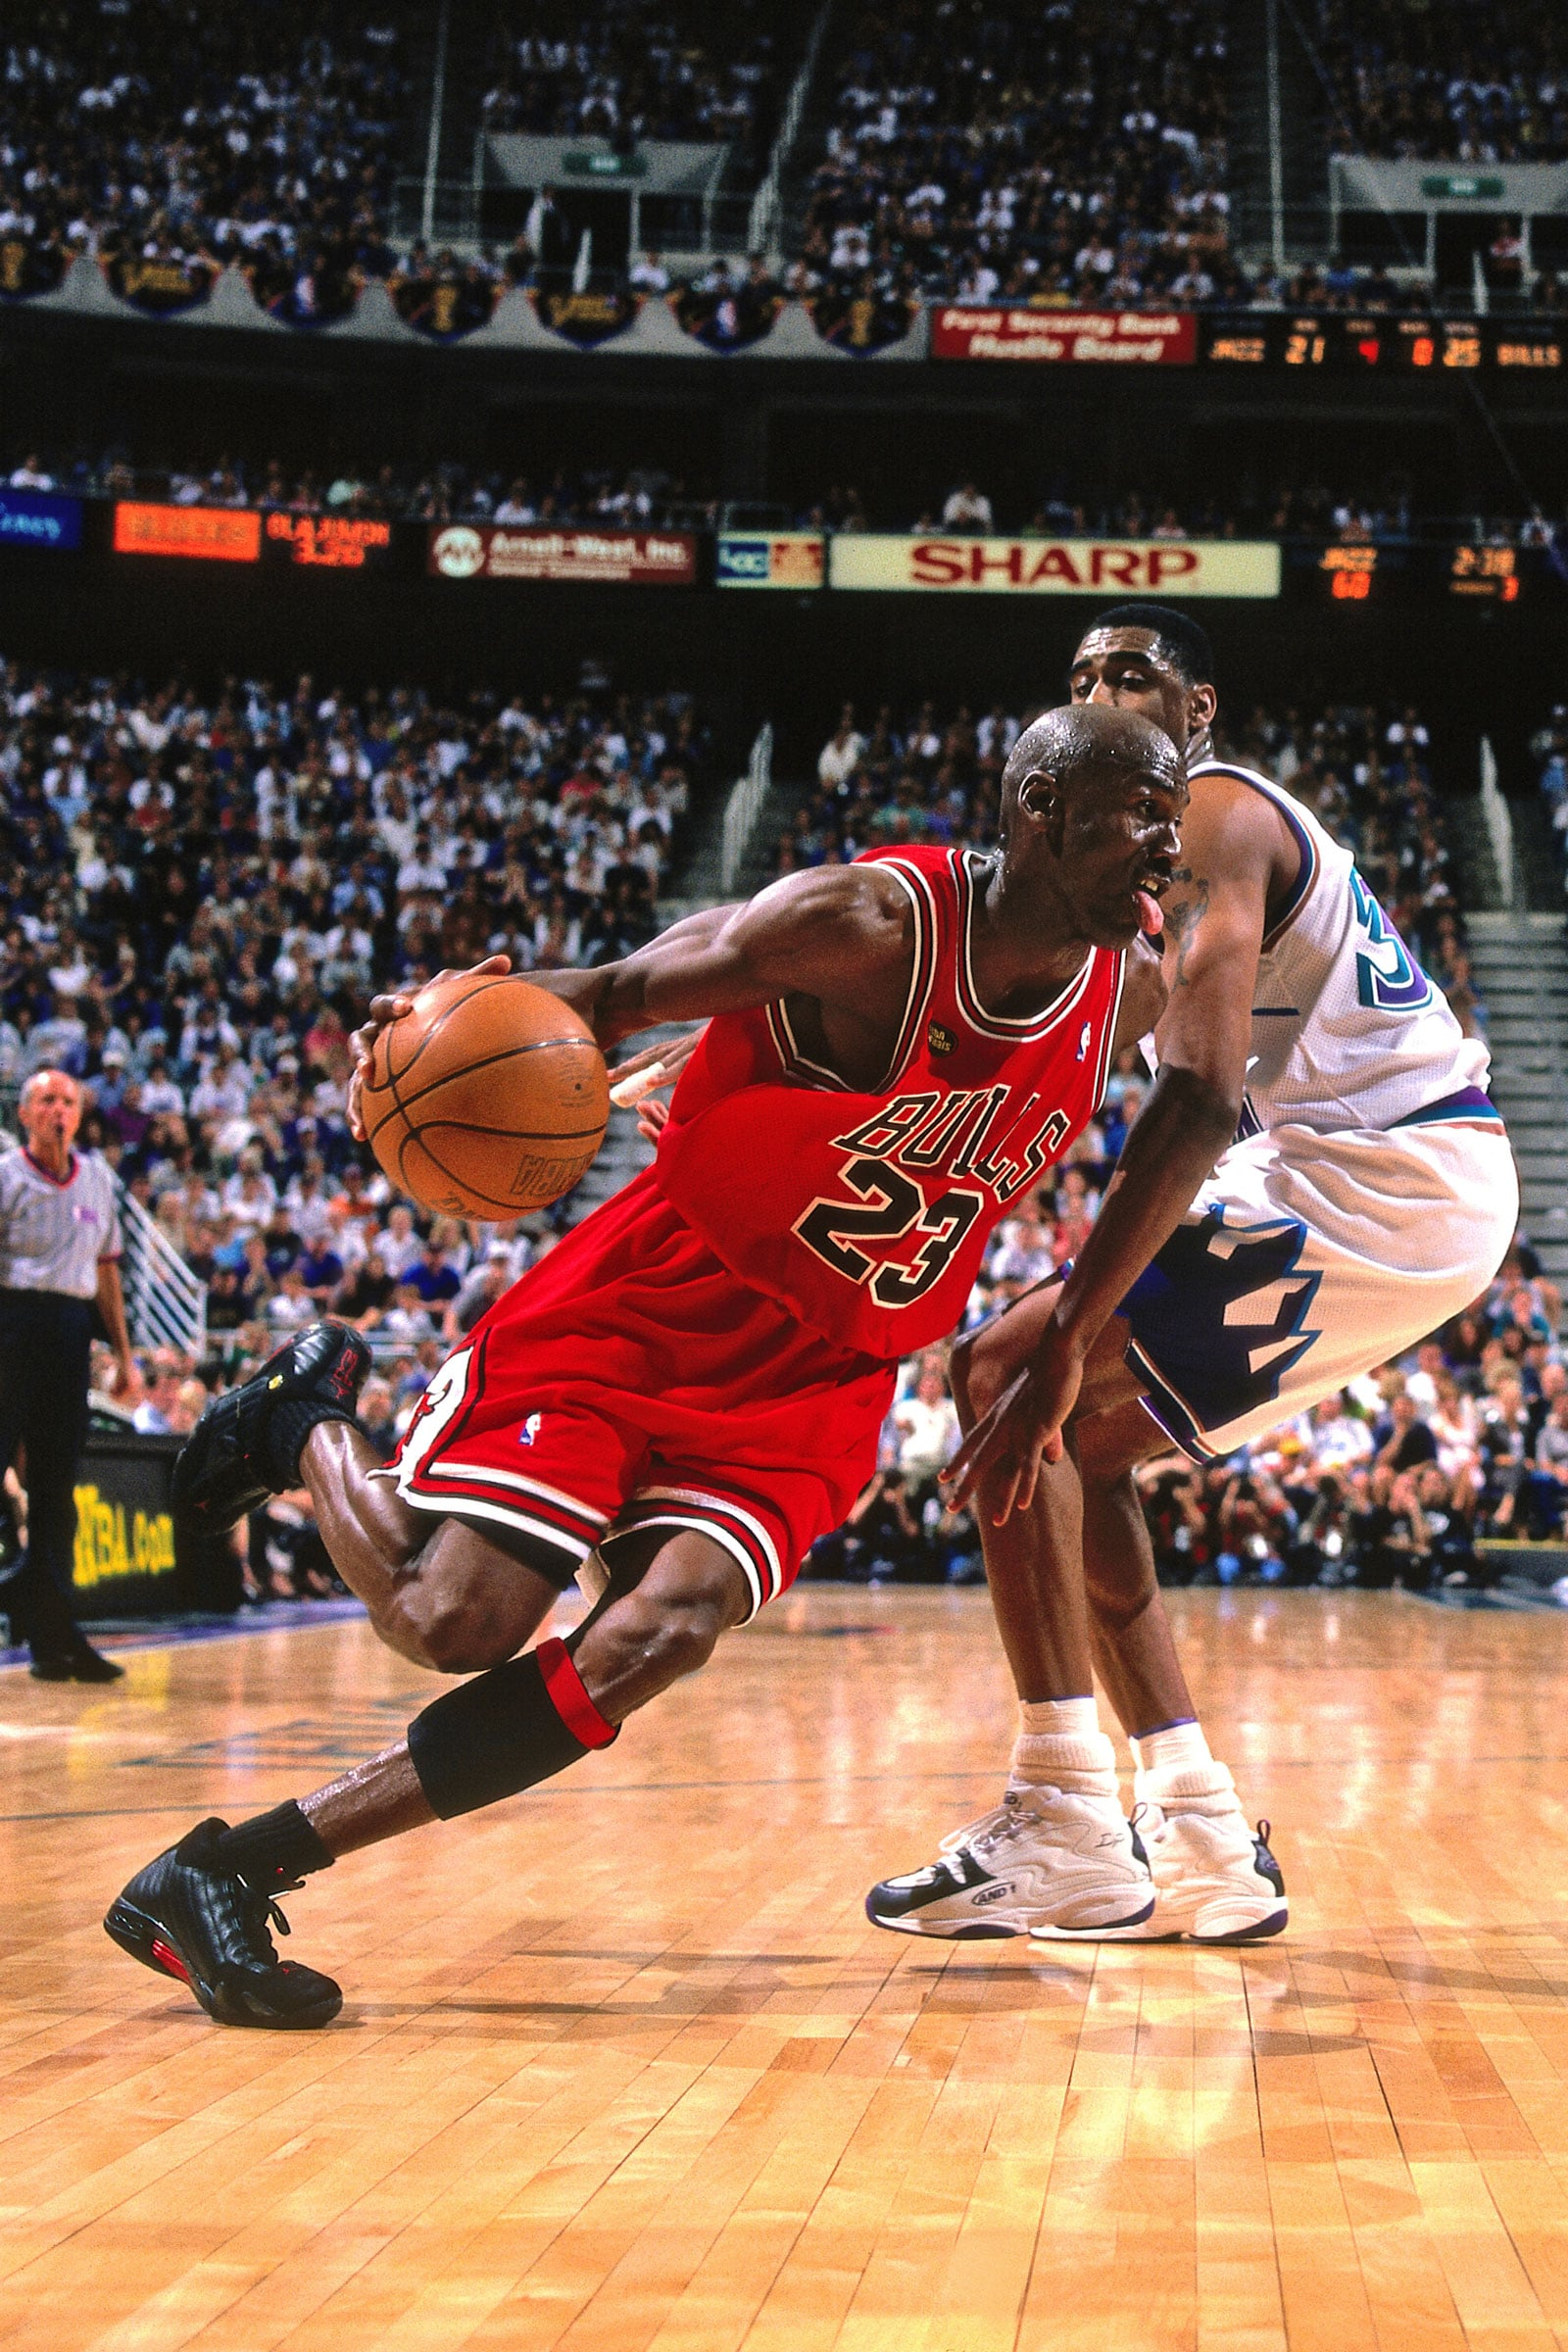 Michael Jordan #23 of the Chicago Bulls handles the ball against the Utah Jazz during Game Six of the NBA Finals during the 1998 NBA Playoffs on June 14, 1998 at the Delta Center in Salt Lake City, Utah.